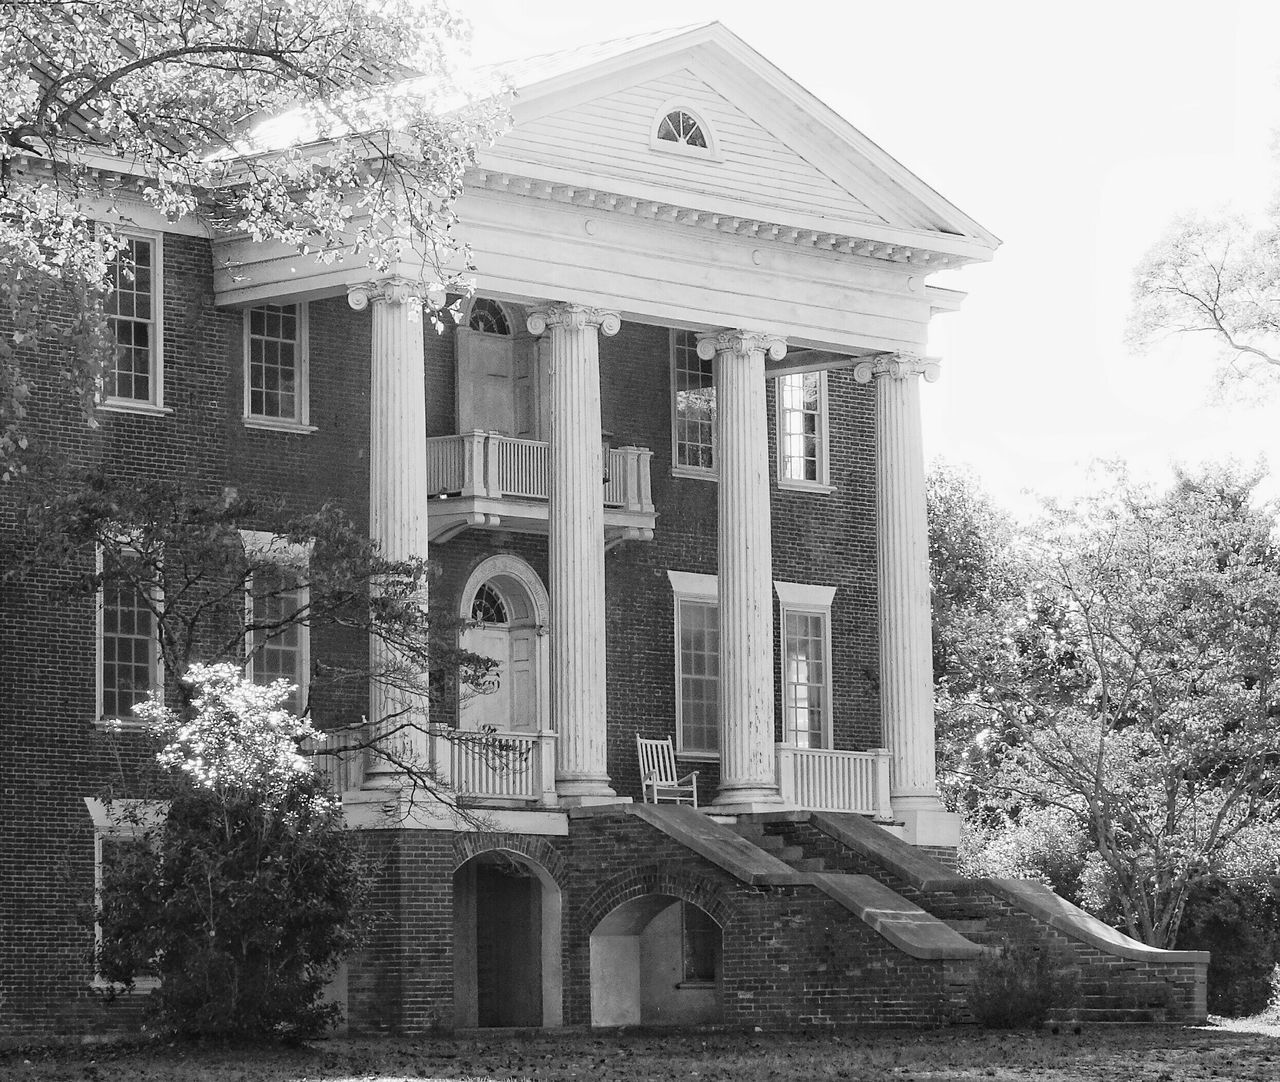 Built in 1830 ... North Carolina Architecture Ruralphotography Autumn Rural America House Historic Houses Antebellum Antebellum Plantation Manor House Blackandwhite Bnw Bnw_captures Beautiful Old House